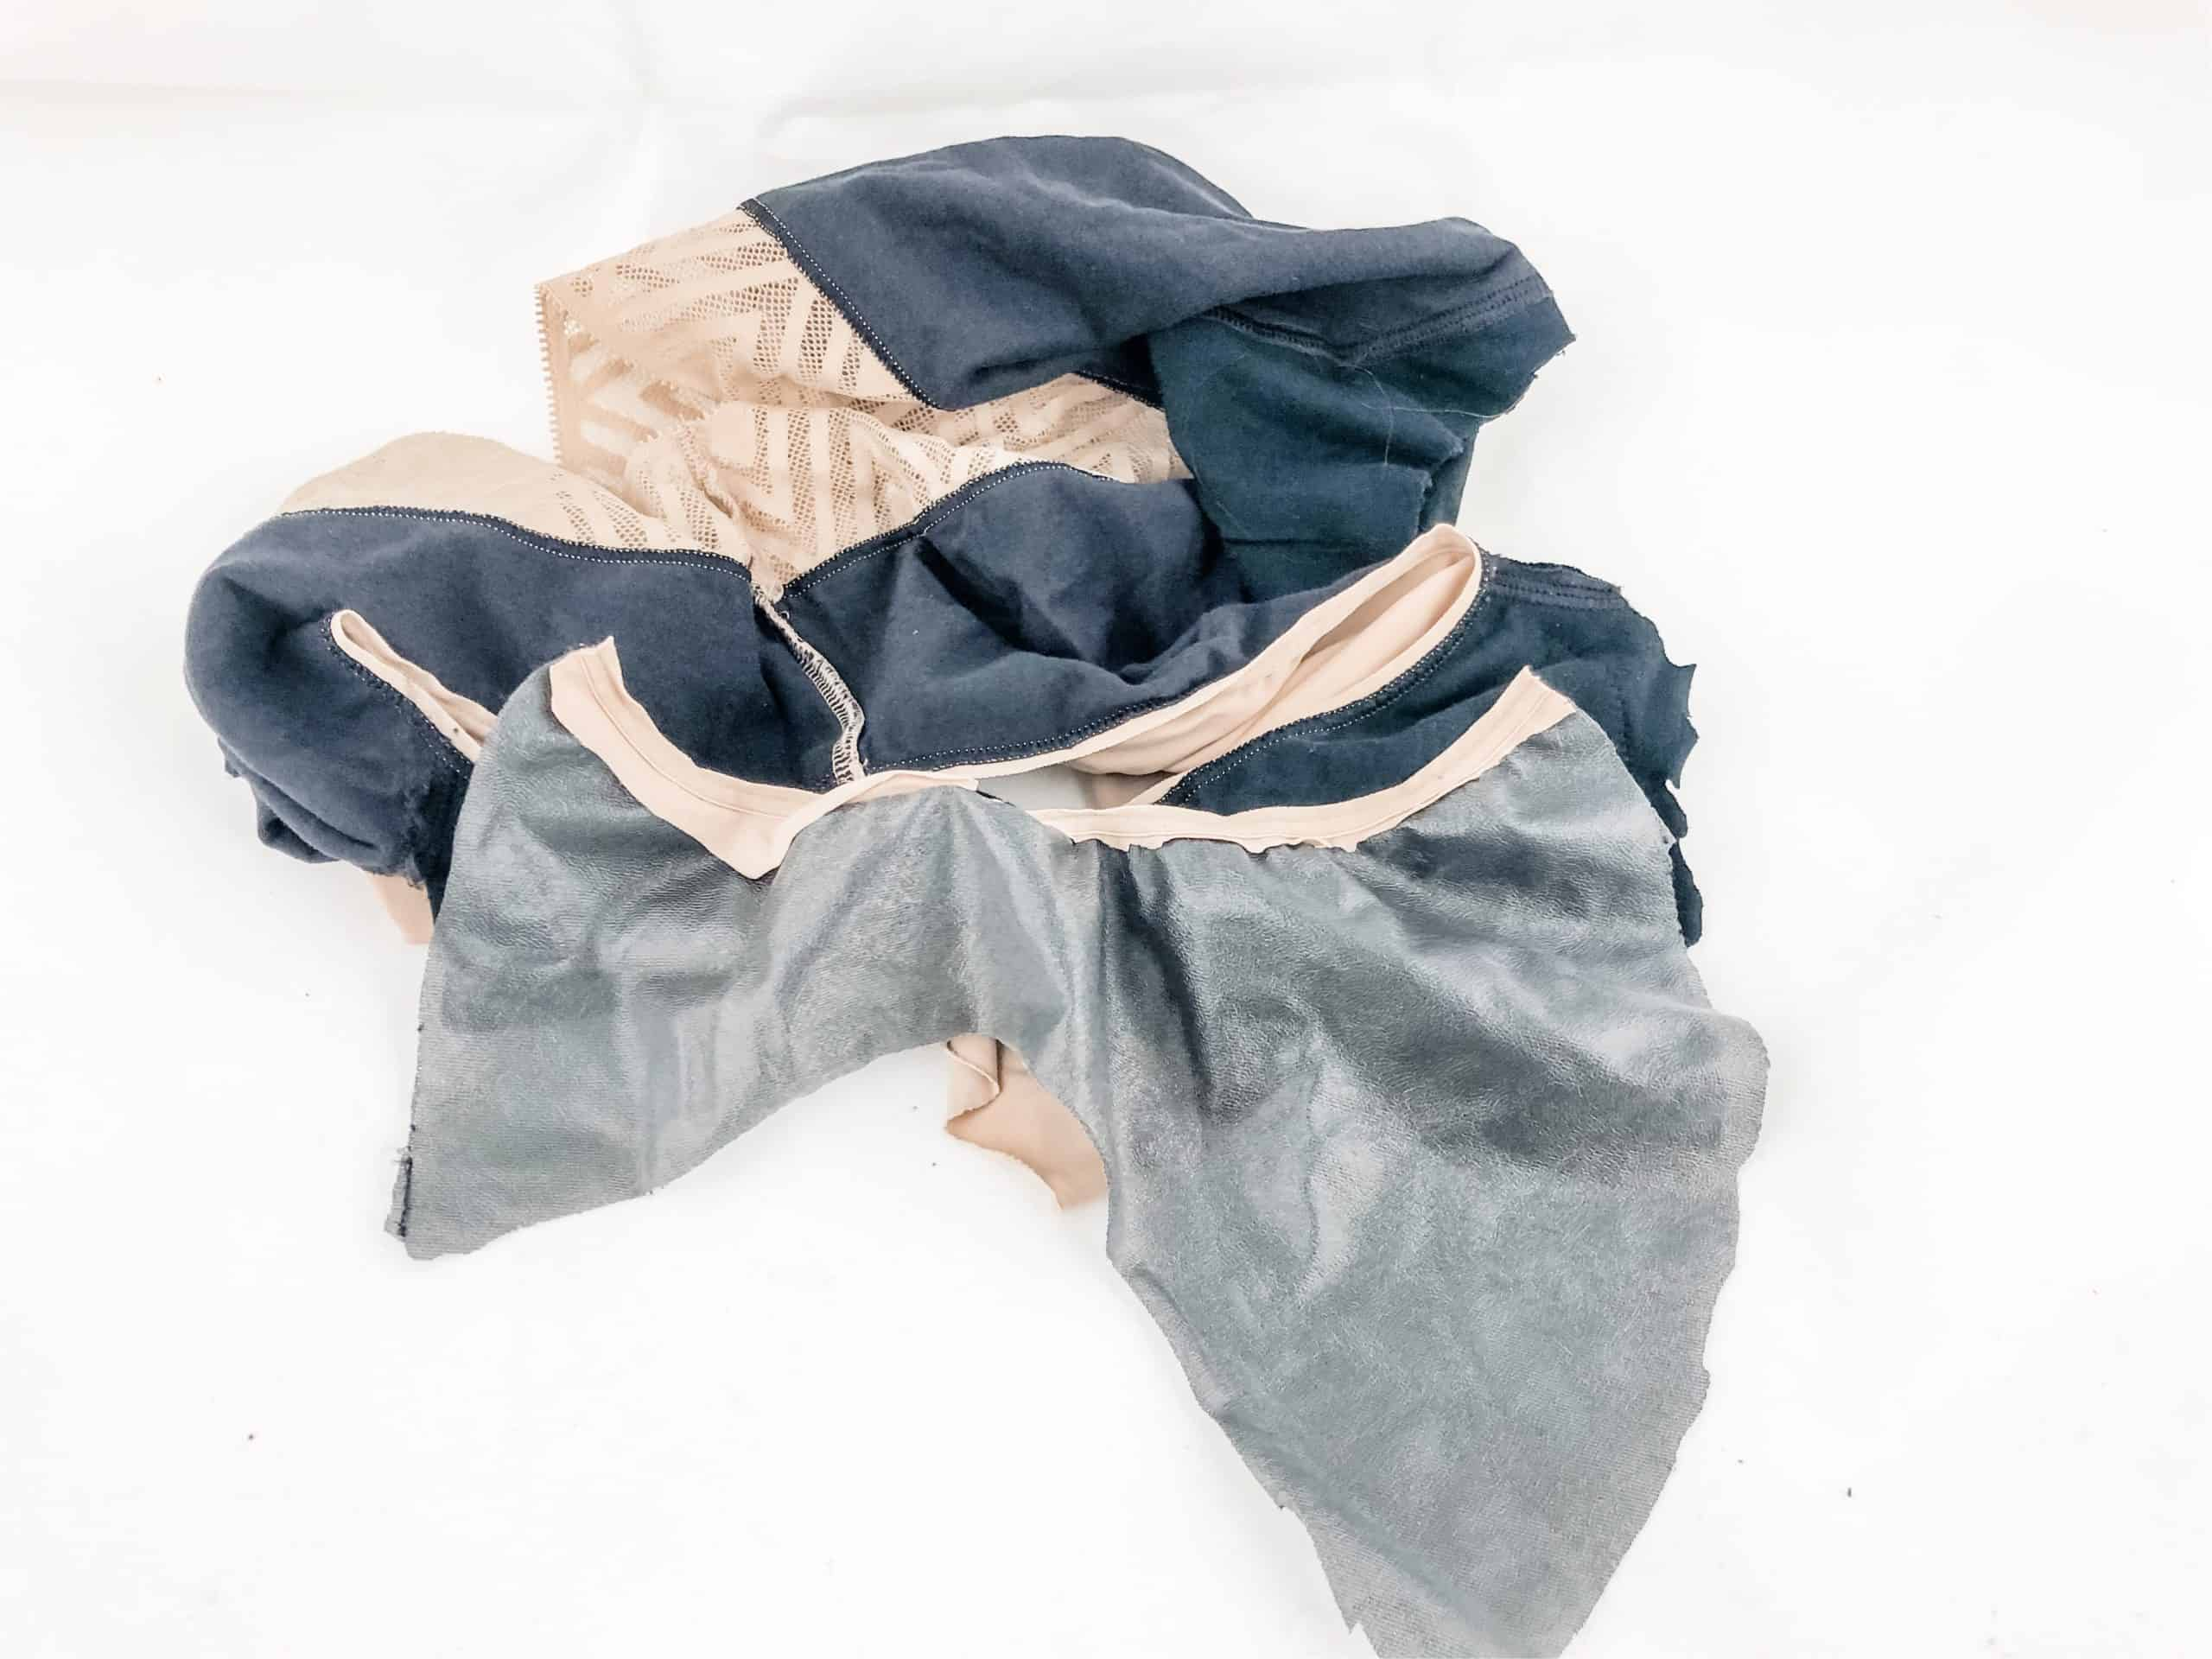 Thinx Period Panties cut up so they expose the inner gusset